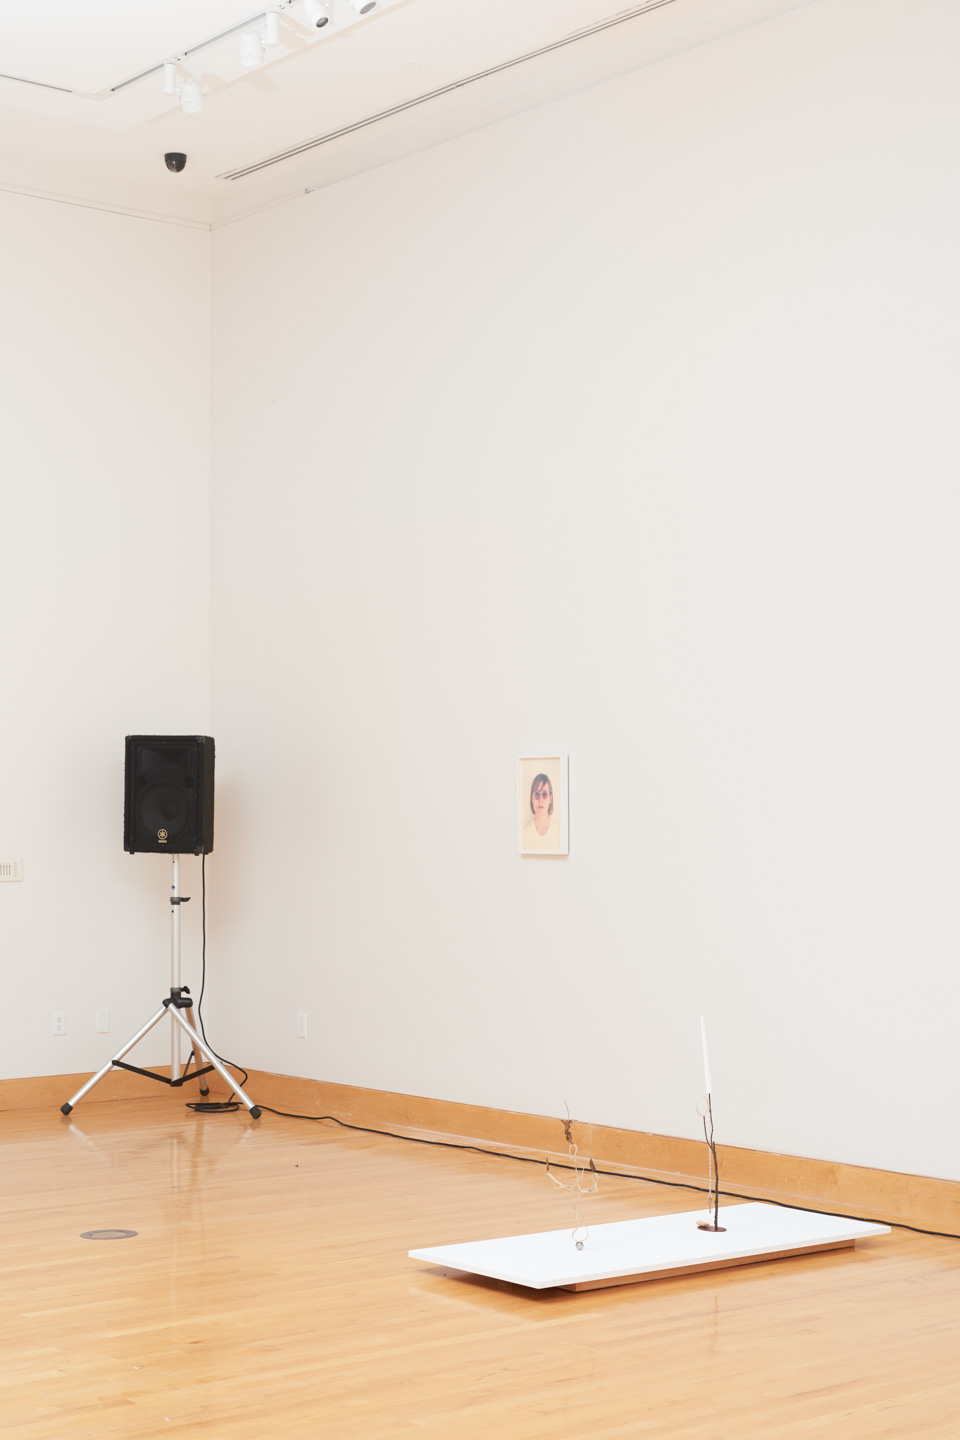 From left to right: Sound by Lucky Dragons, Photography by Josh Shaddock, Sculpture by Lesley Jackson.